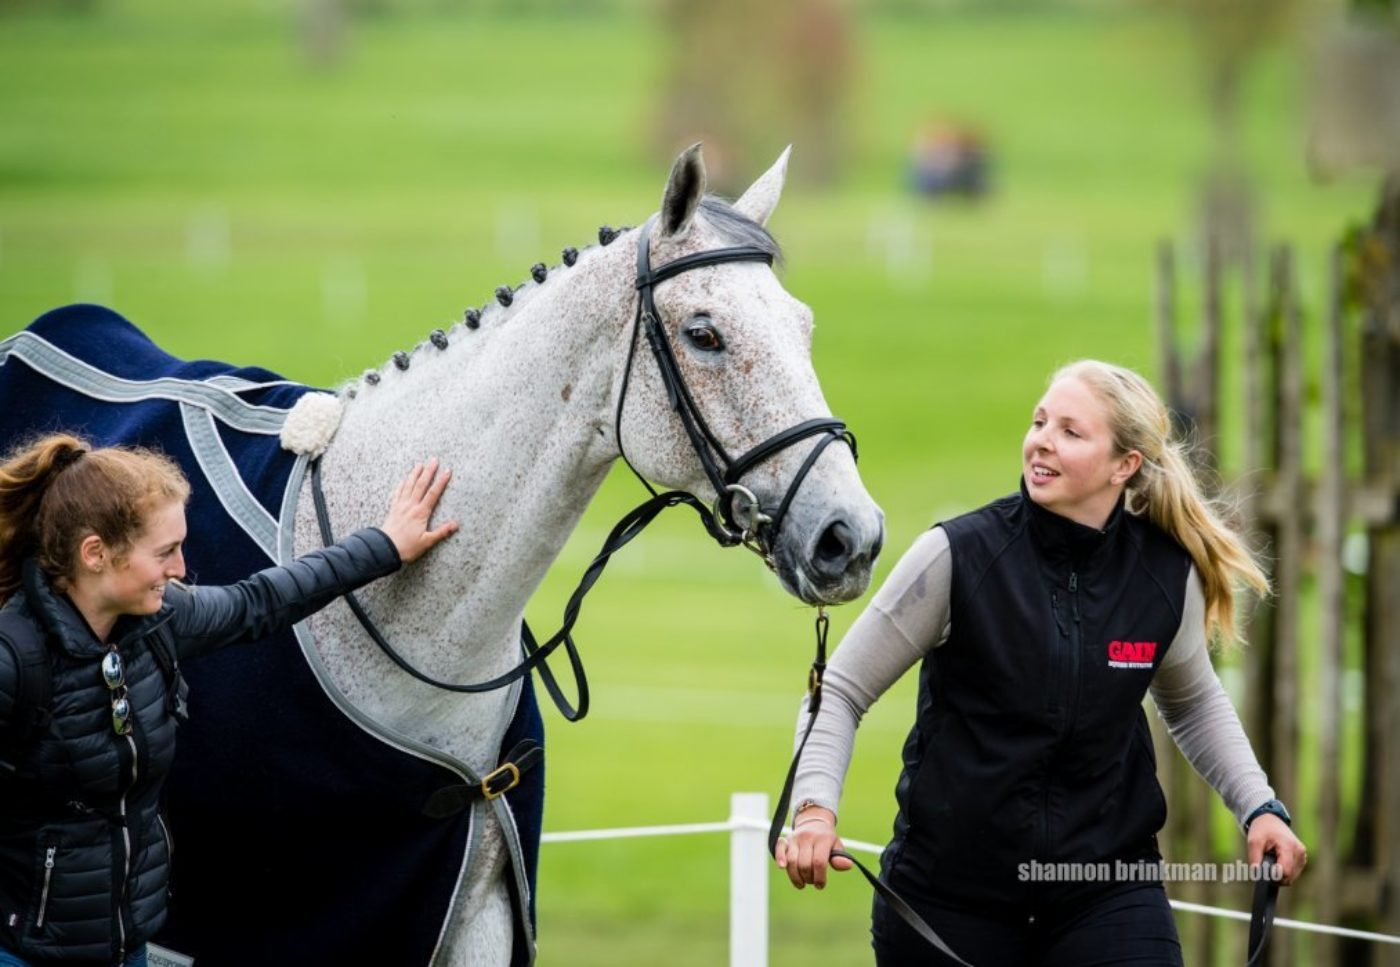 Ballaghmor gets gets some attention after his test